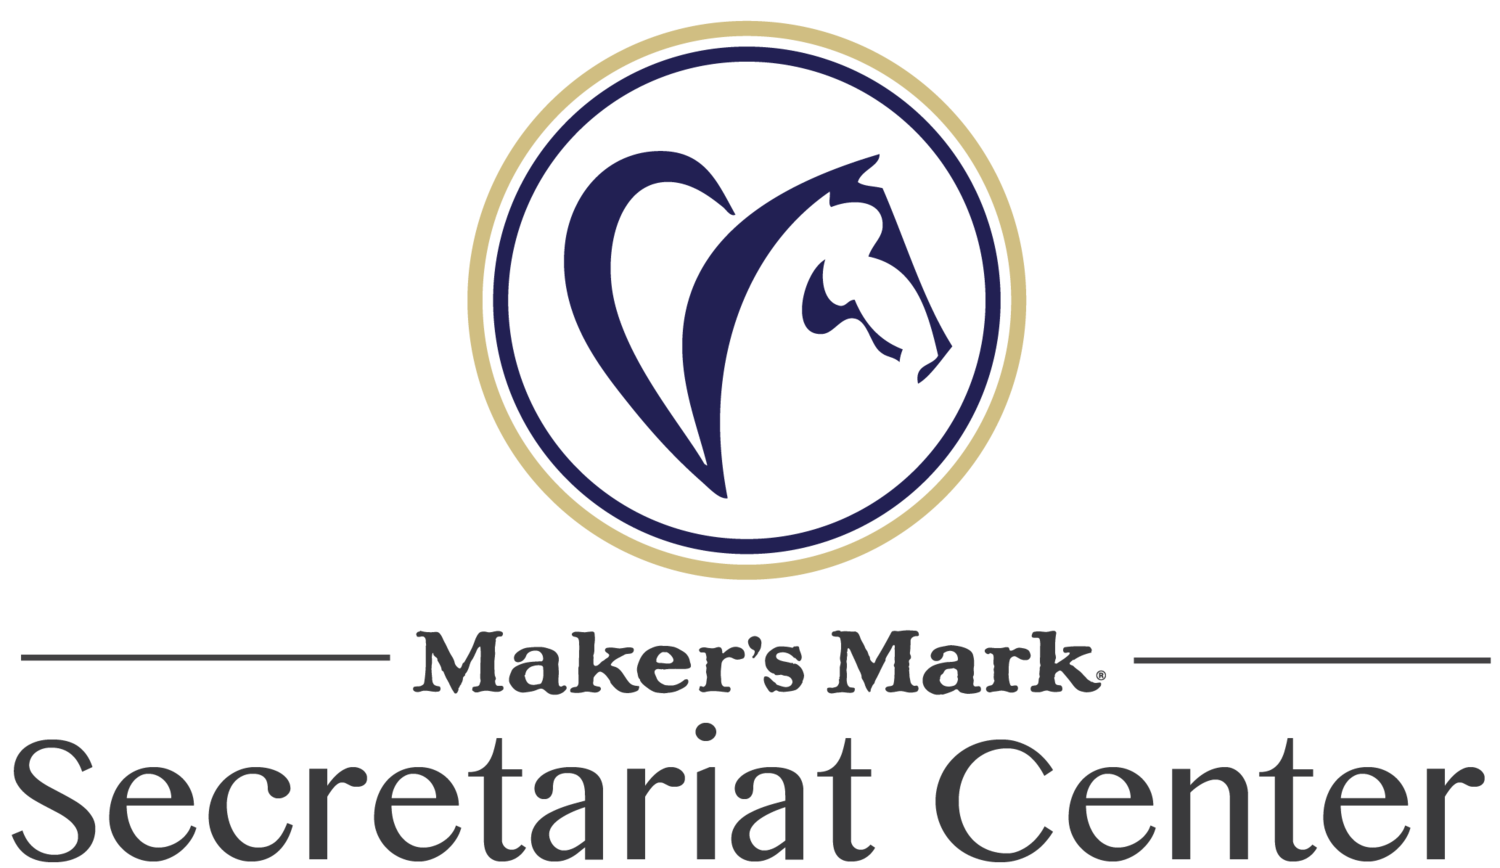 Maker's Mark Secretariat Center